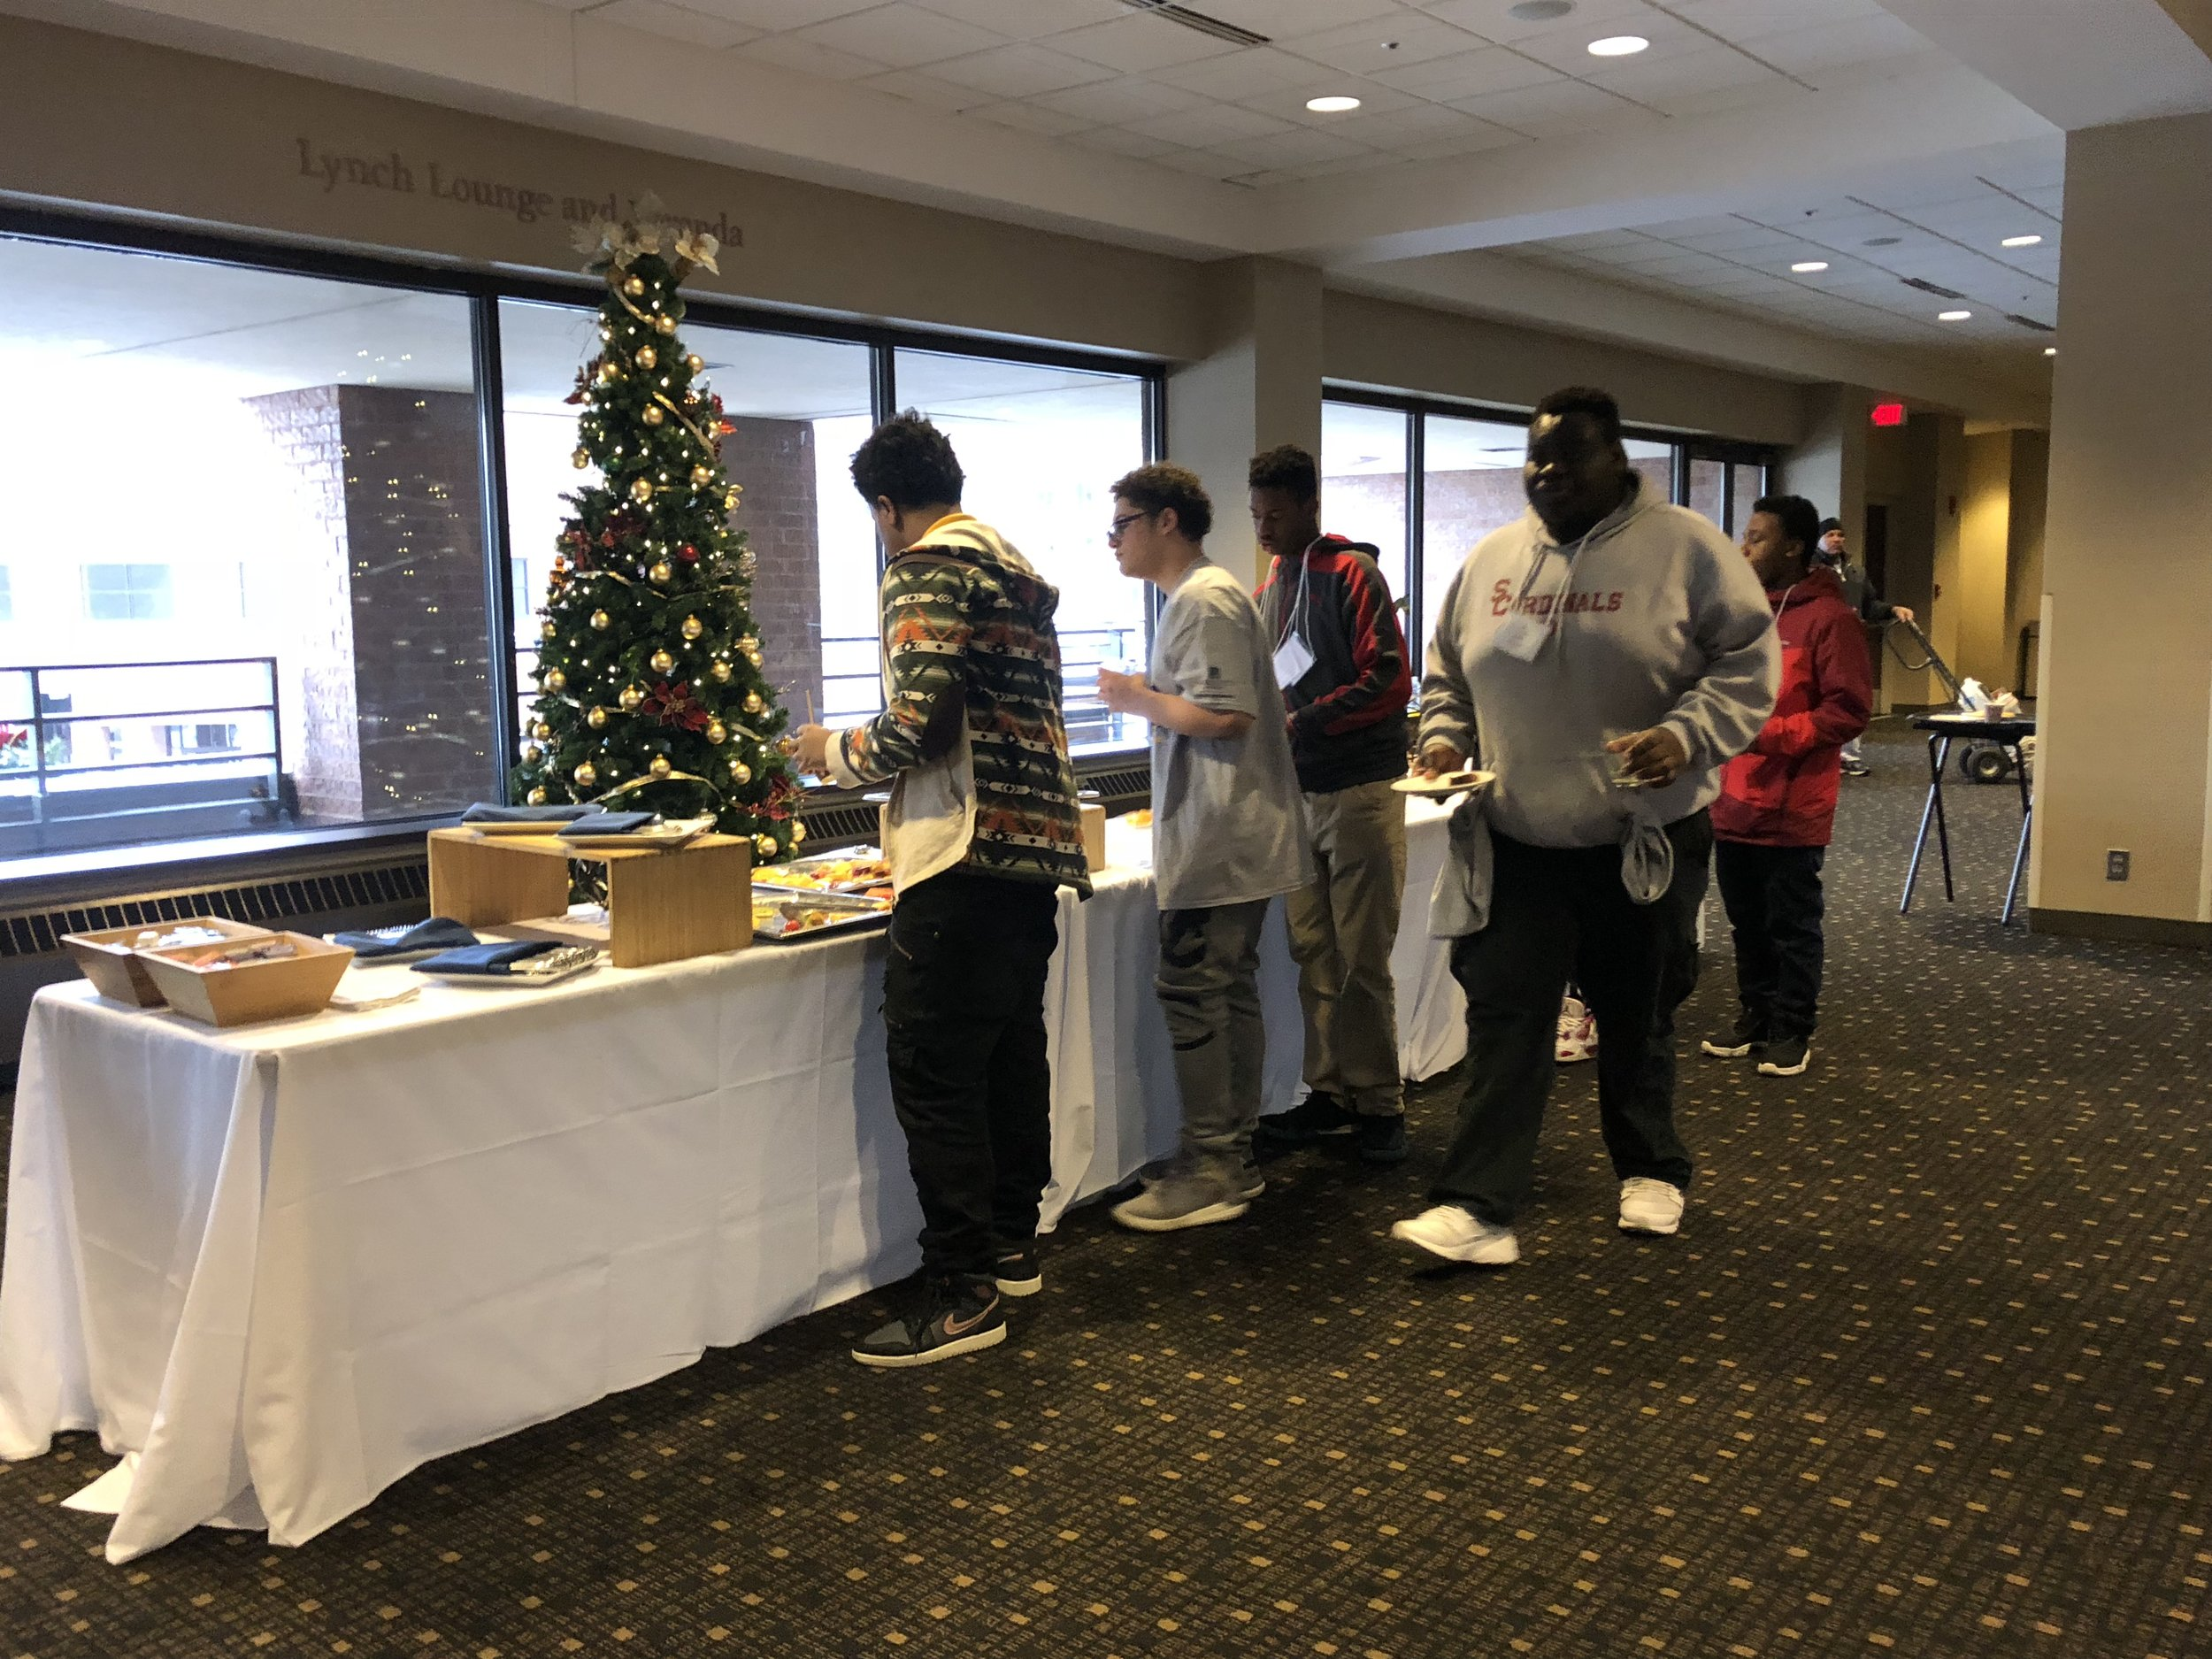 Students lined up to get breakfast. (Picture by Nyesha Stone)